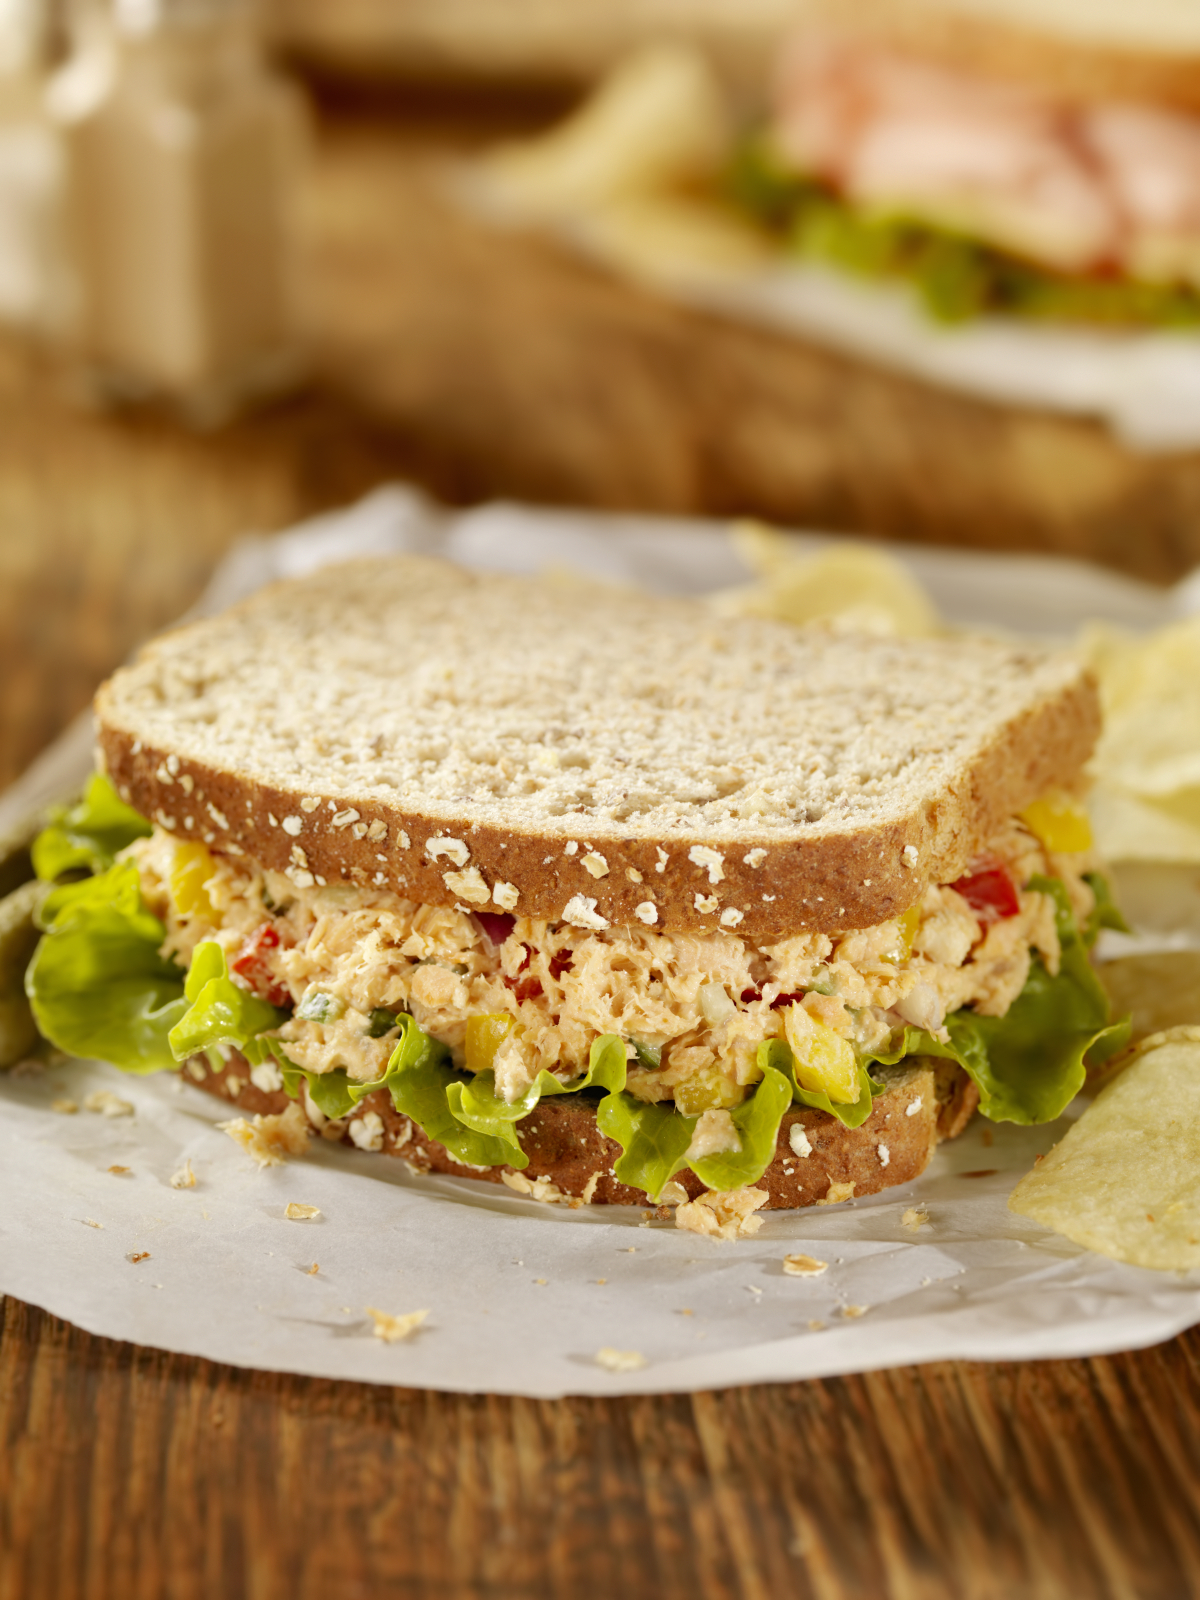 ... tuna salad sandwich pan bagnat le french tuna salad sandwich recipe on